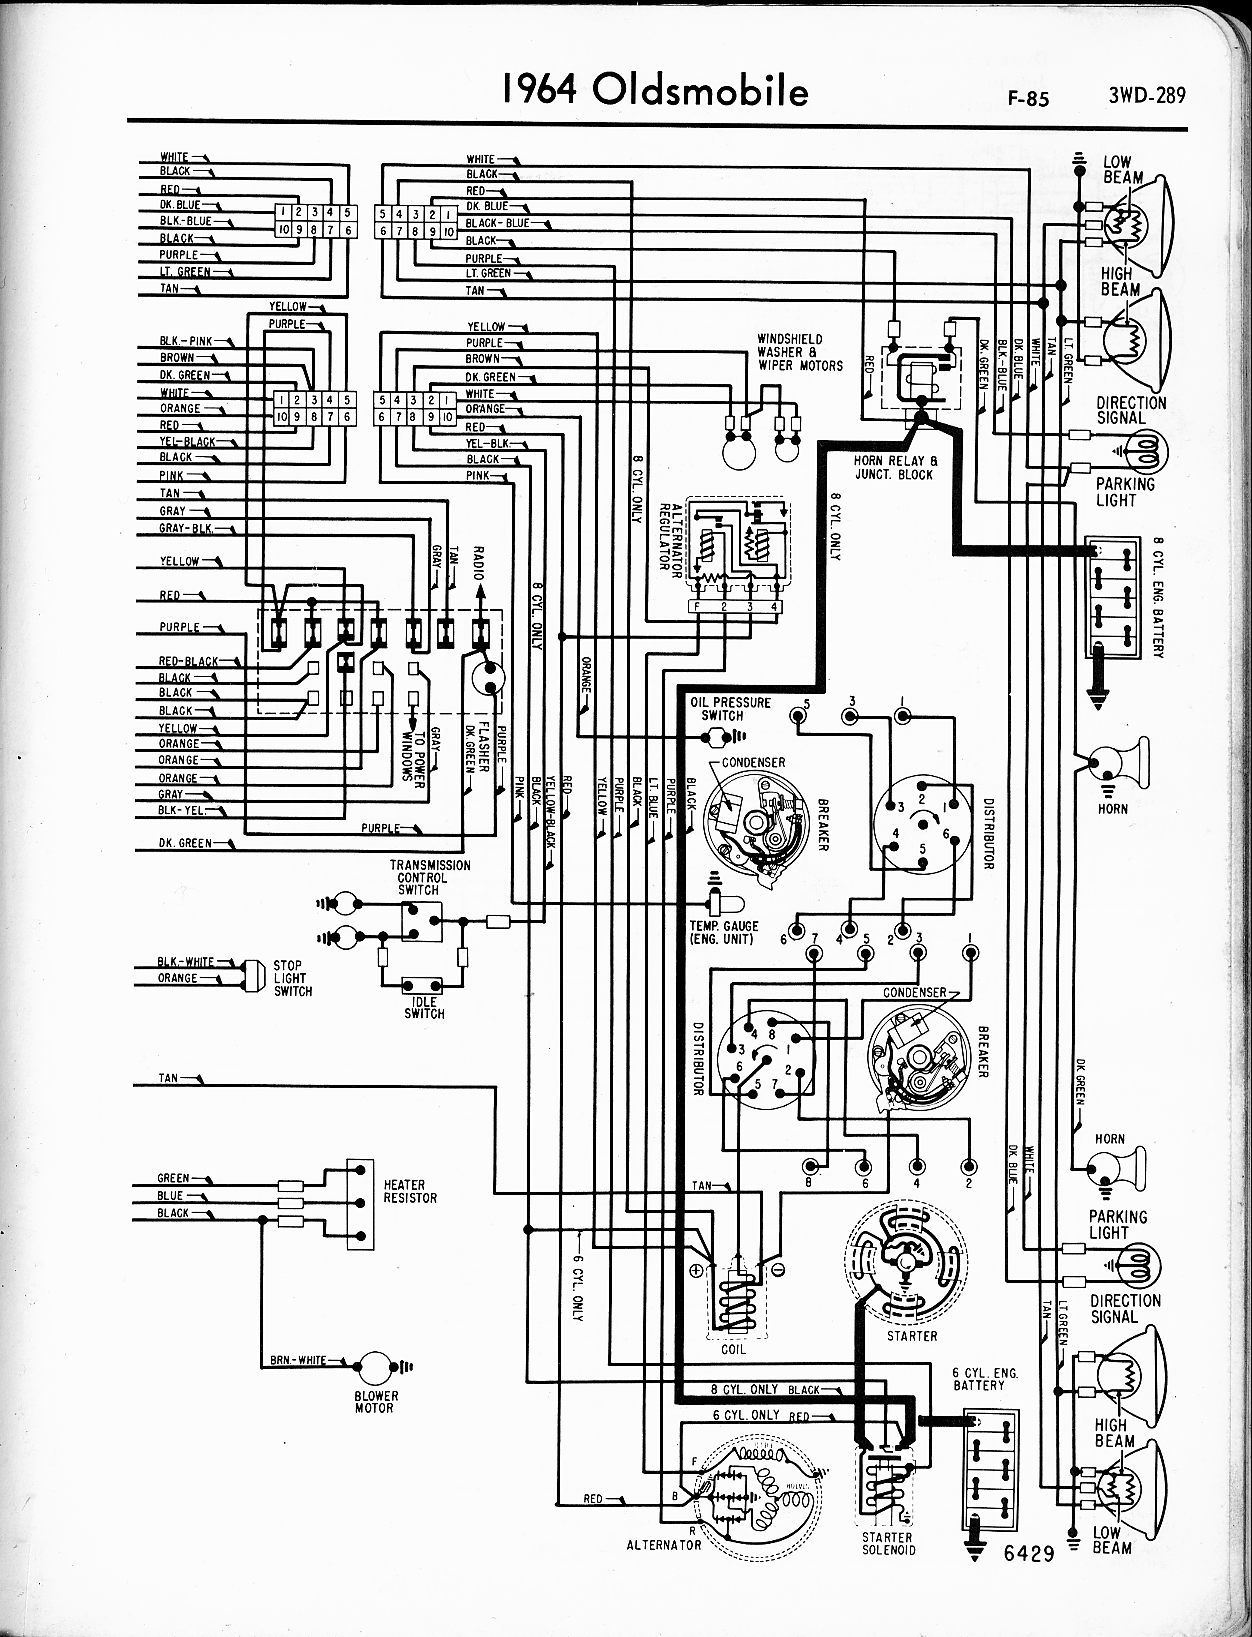 1946 Oldsmobile Wiring Diagram 1941 Buick Free 1967 Cutlass Auto Electrical Rh Student Nottingham Edu Funeral 1998